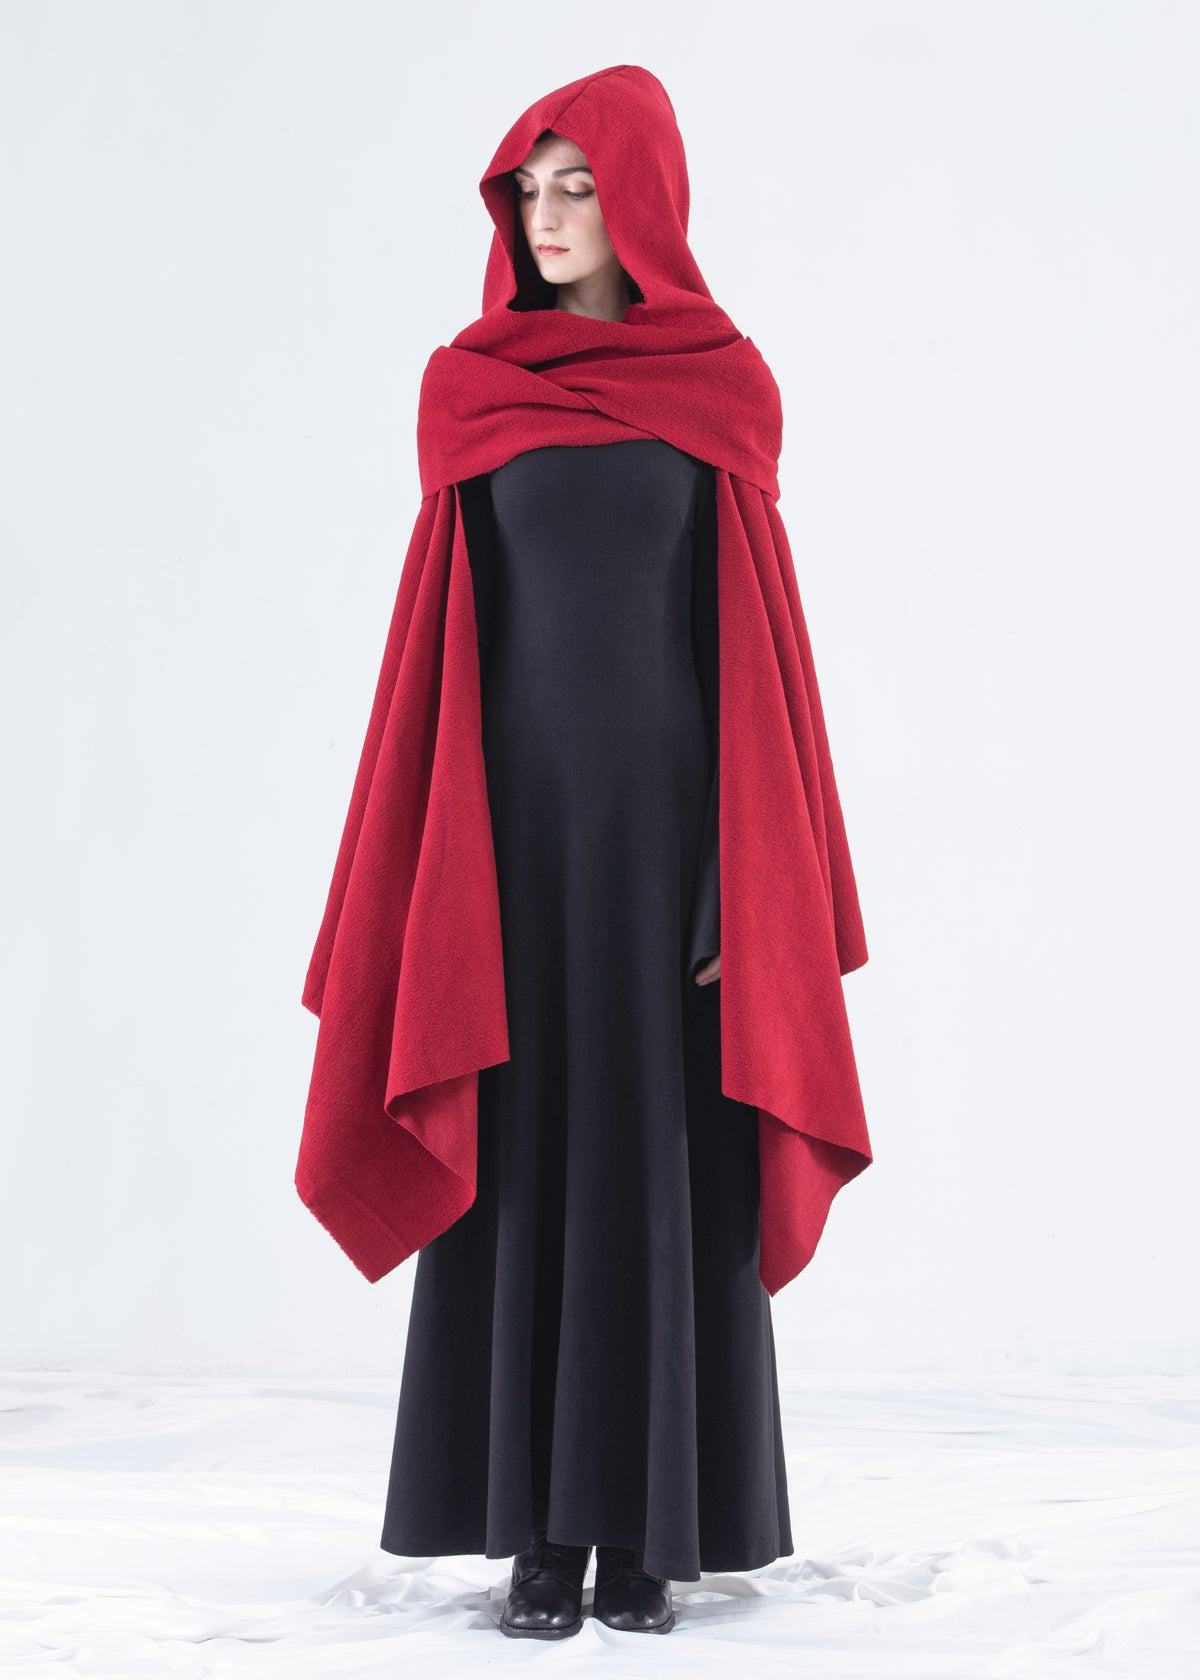 Image of Shawl Hooded Wrap Cape in Rudy